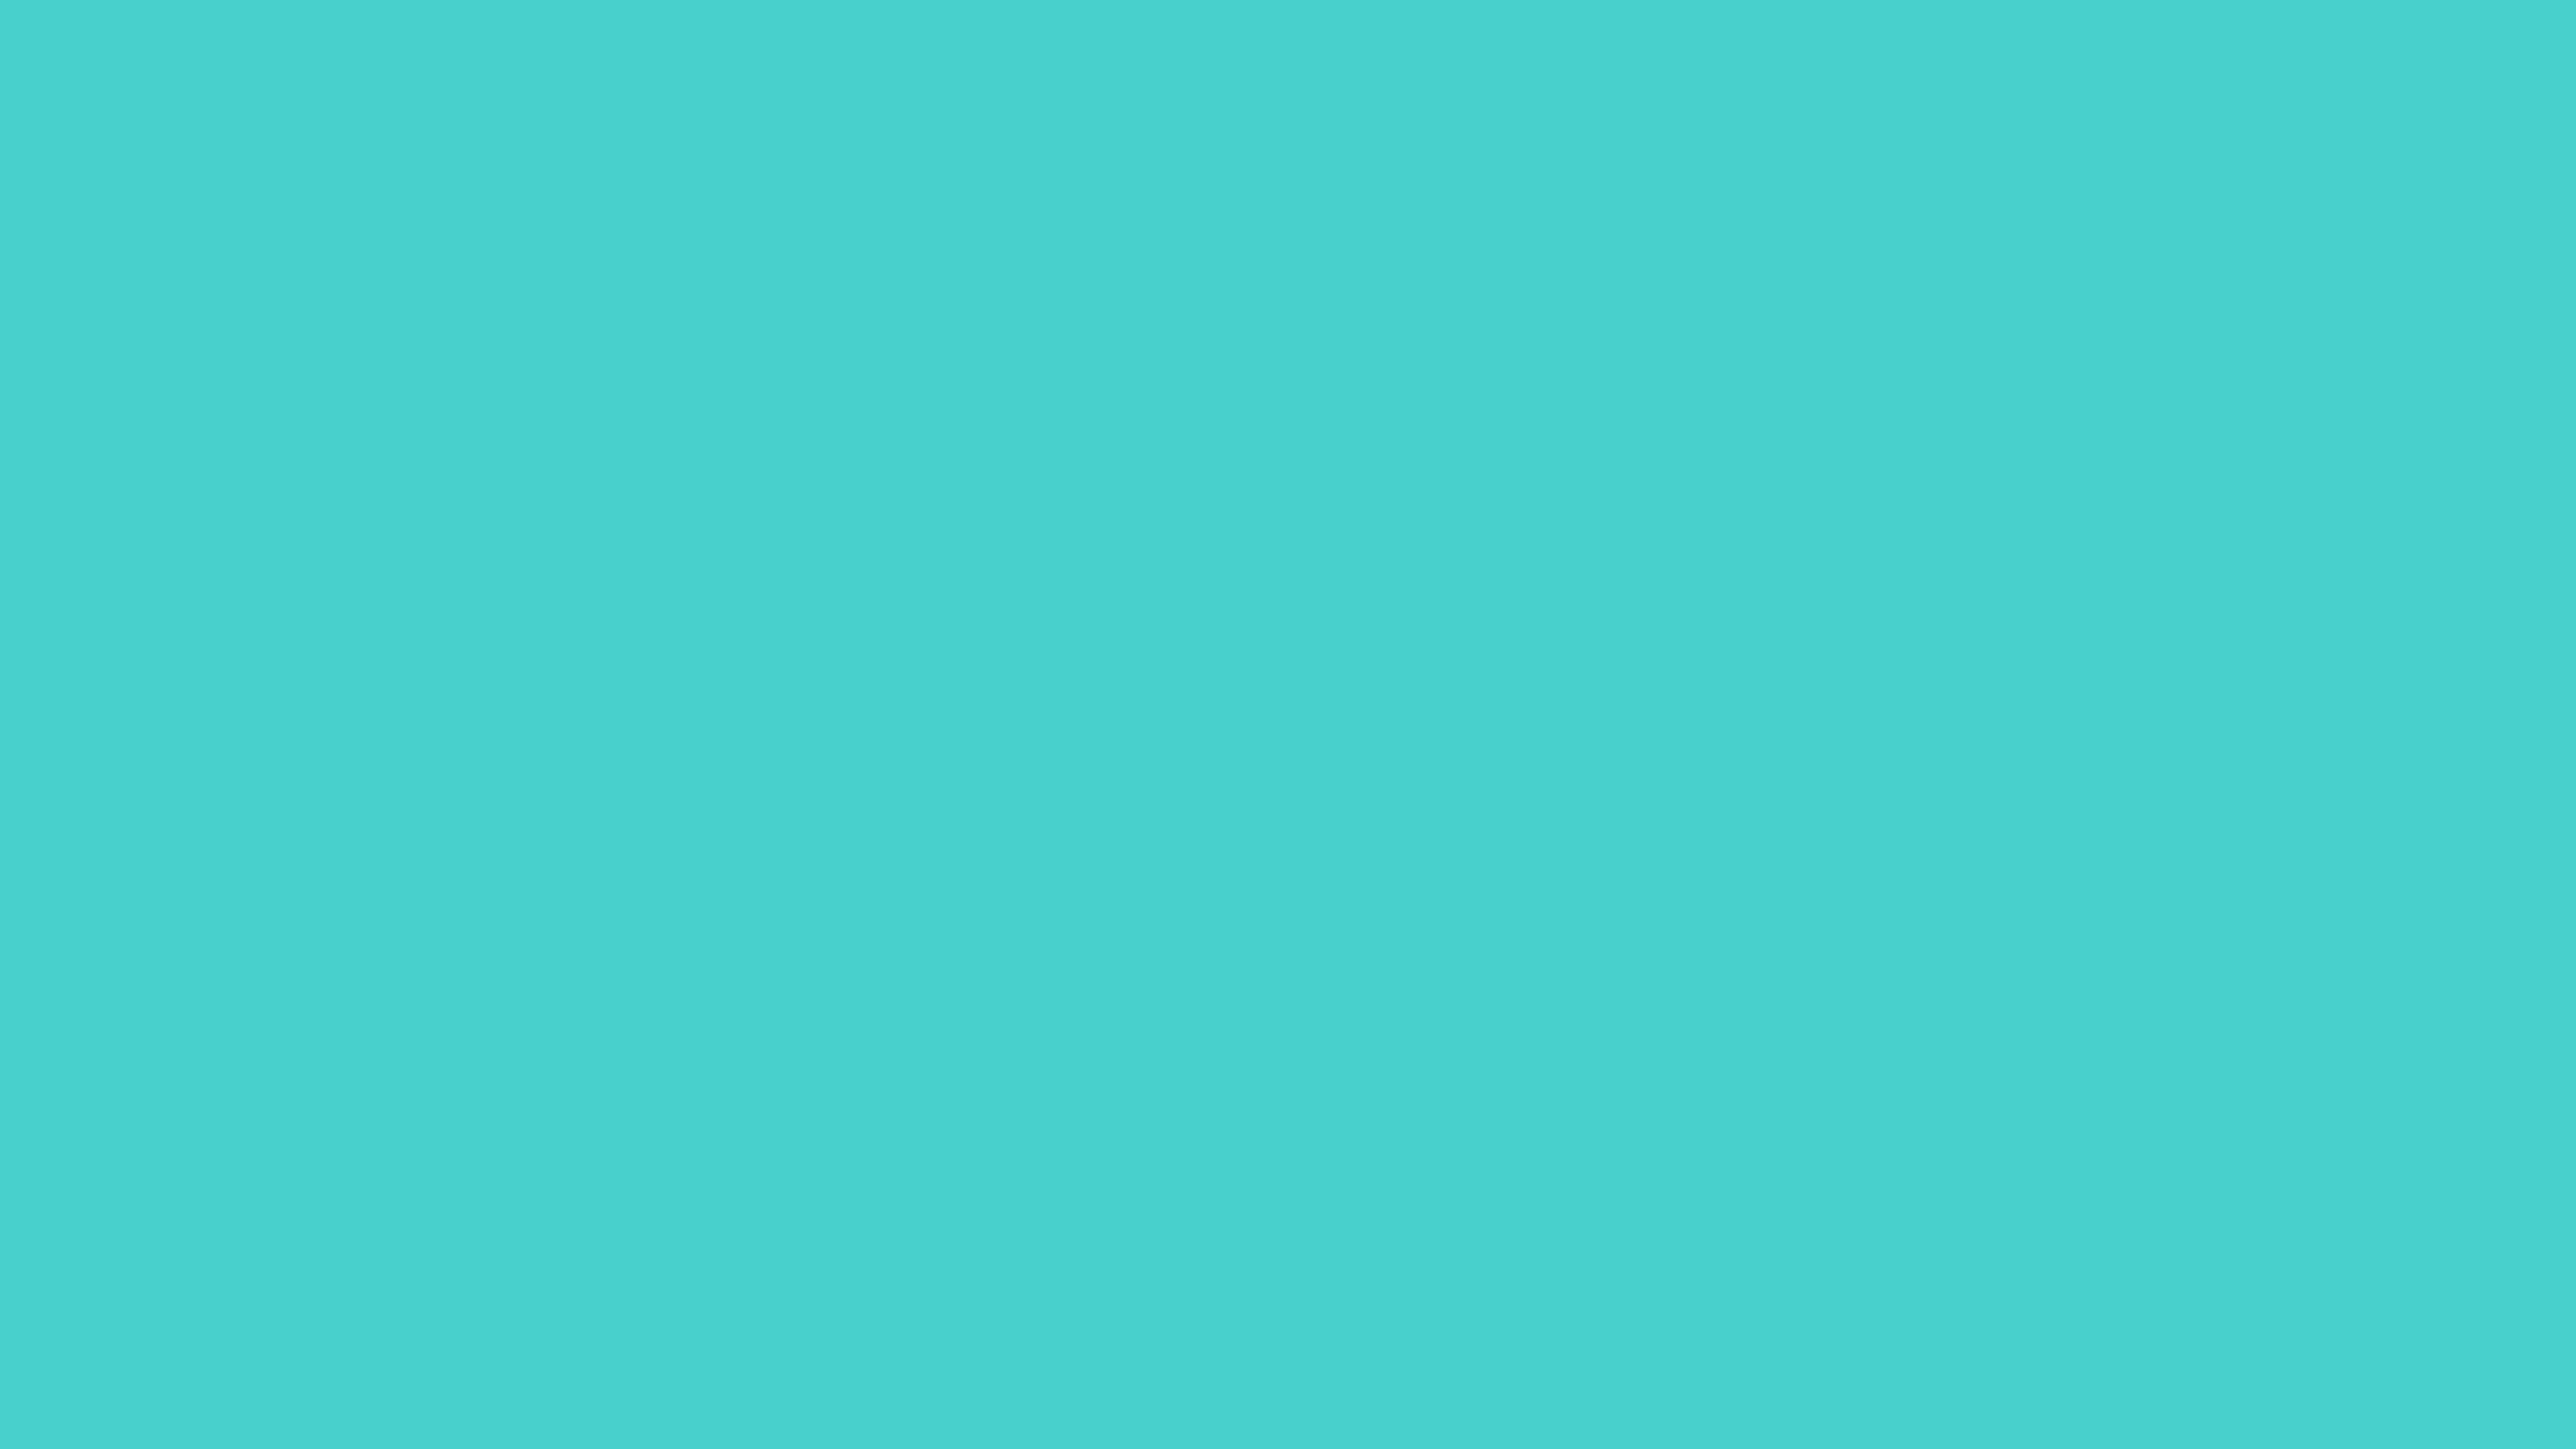 4096x2304 Medium Turquoise Solid Color Background